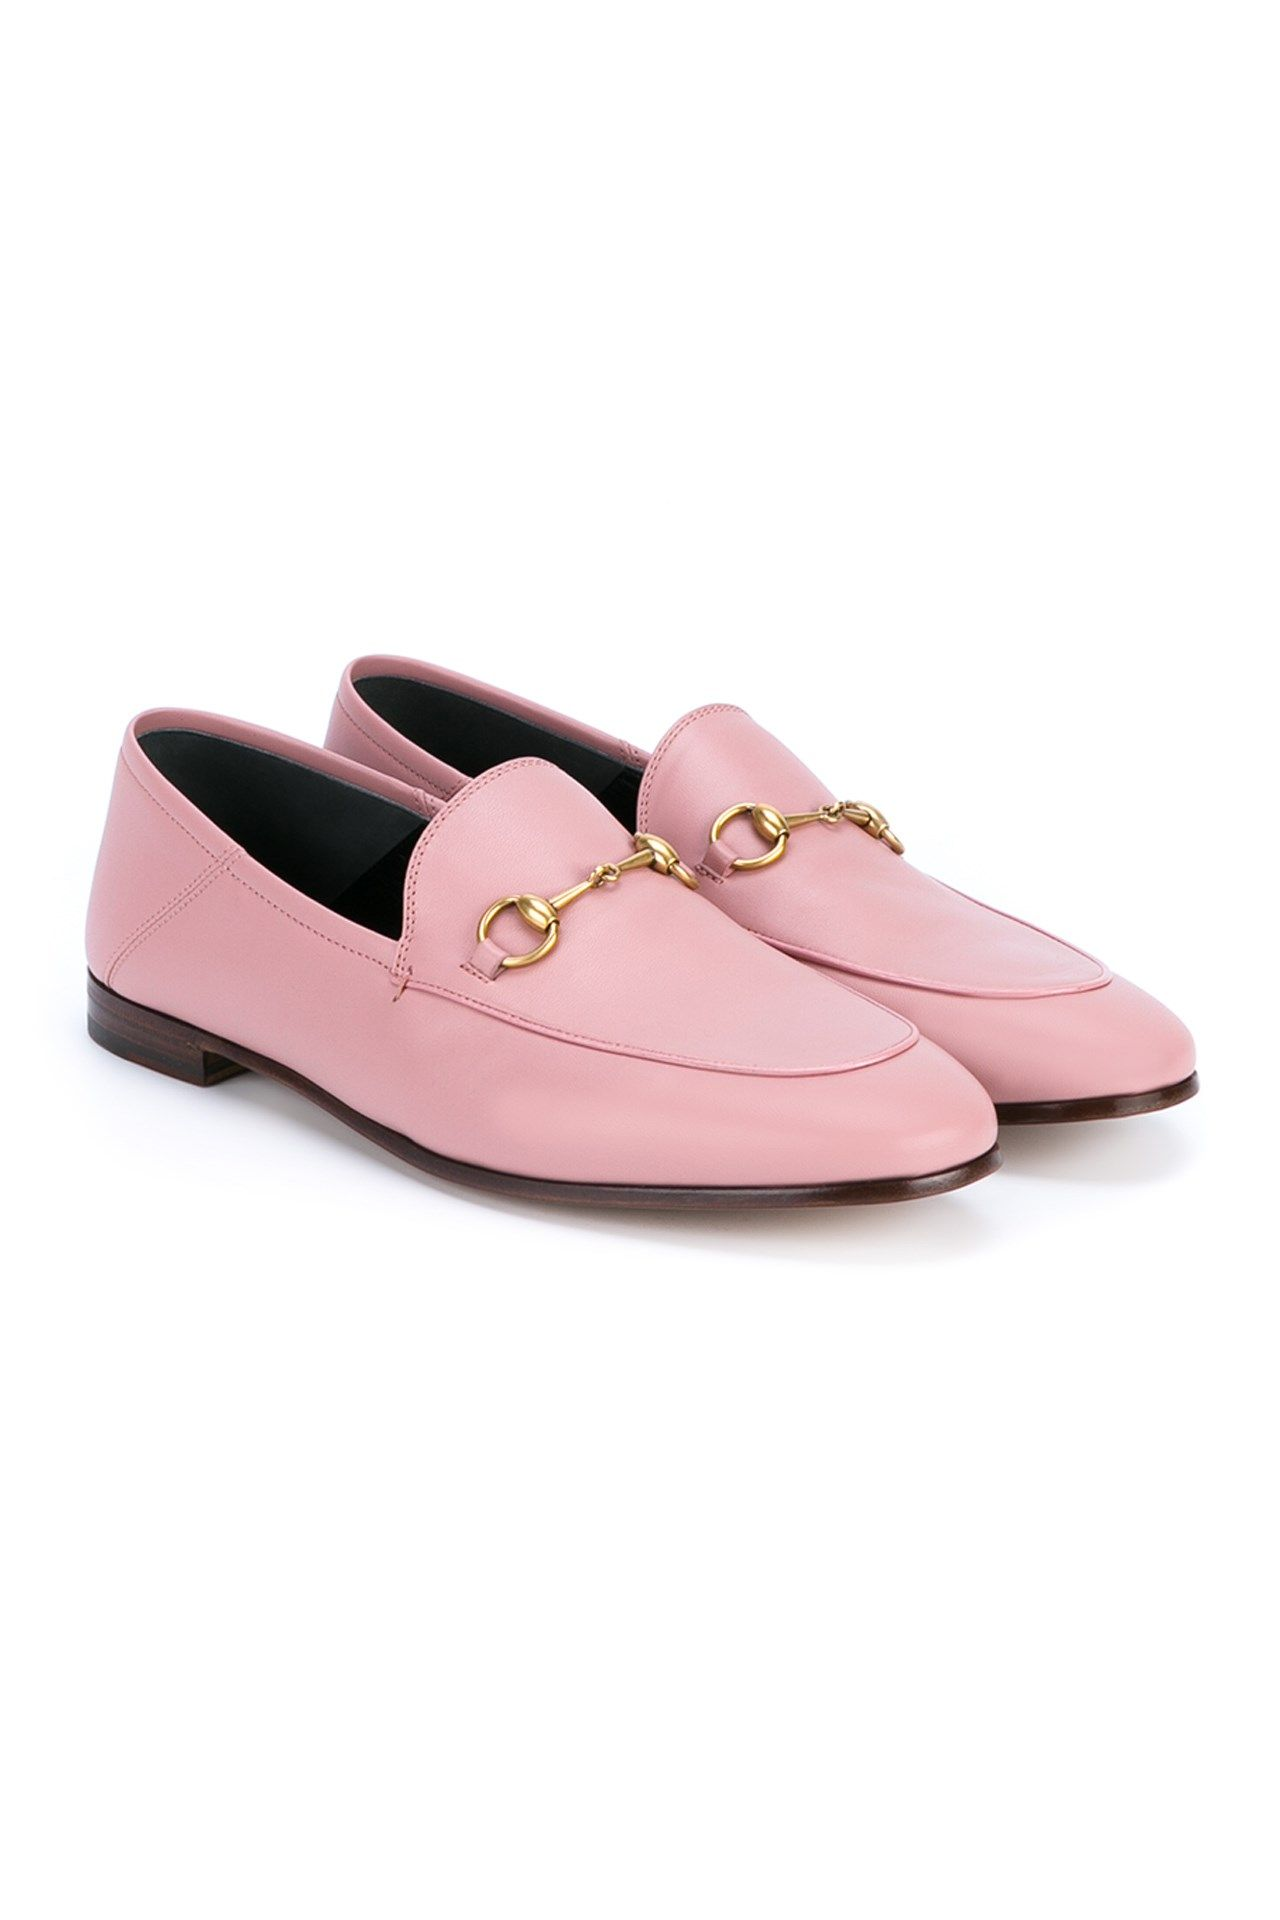 414b9c6843f 22 Pairs Of The Best Flat Shoes To Kick Your Spring Wardrobe Into ...